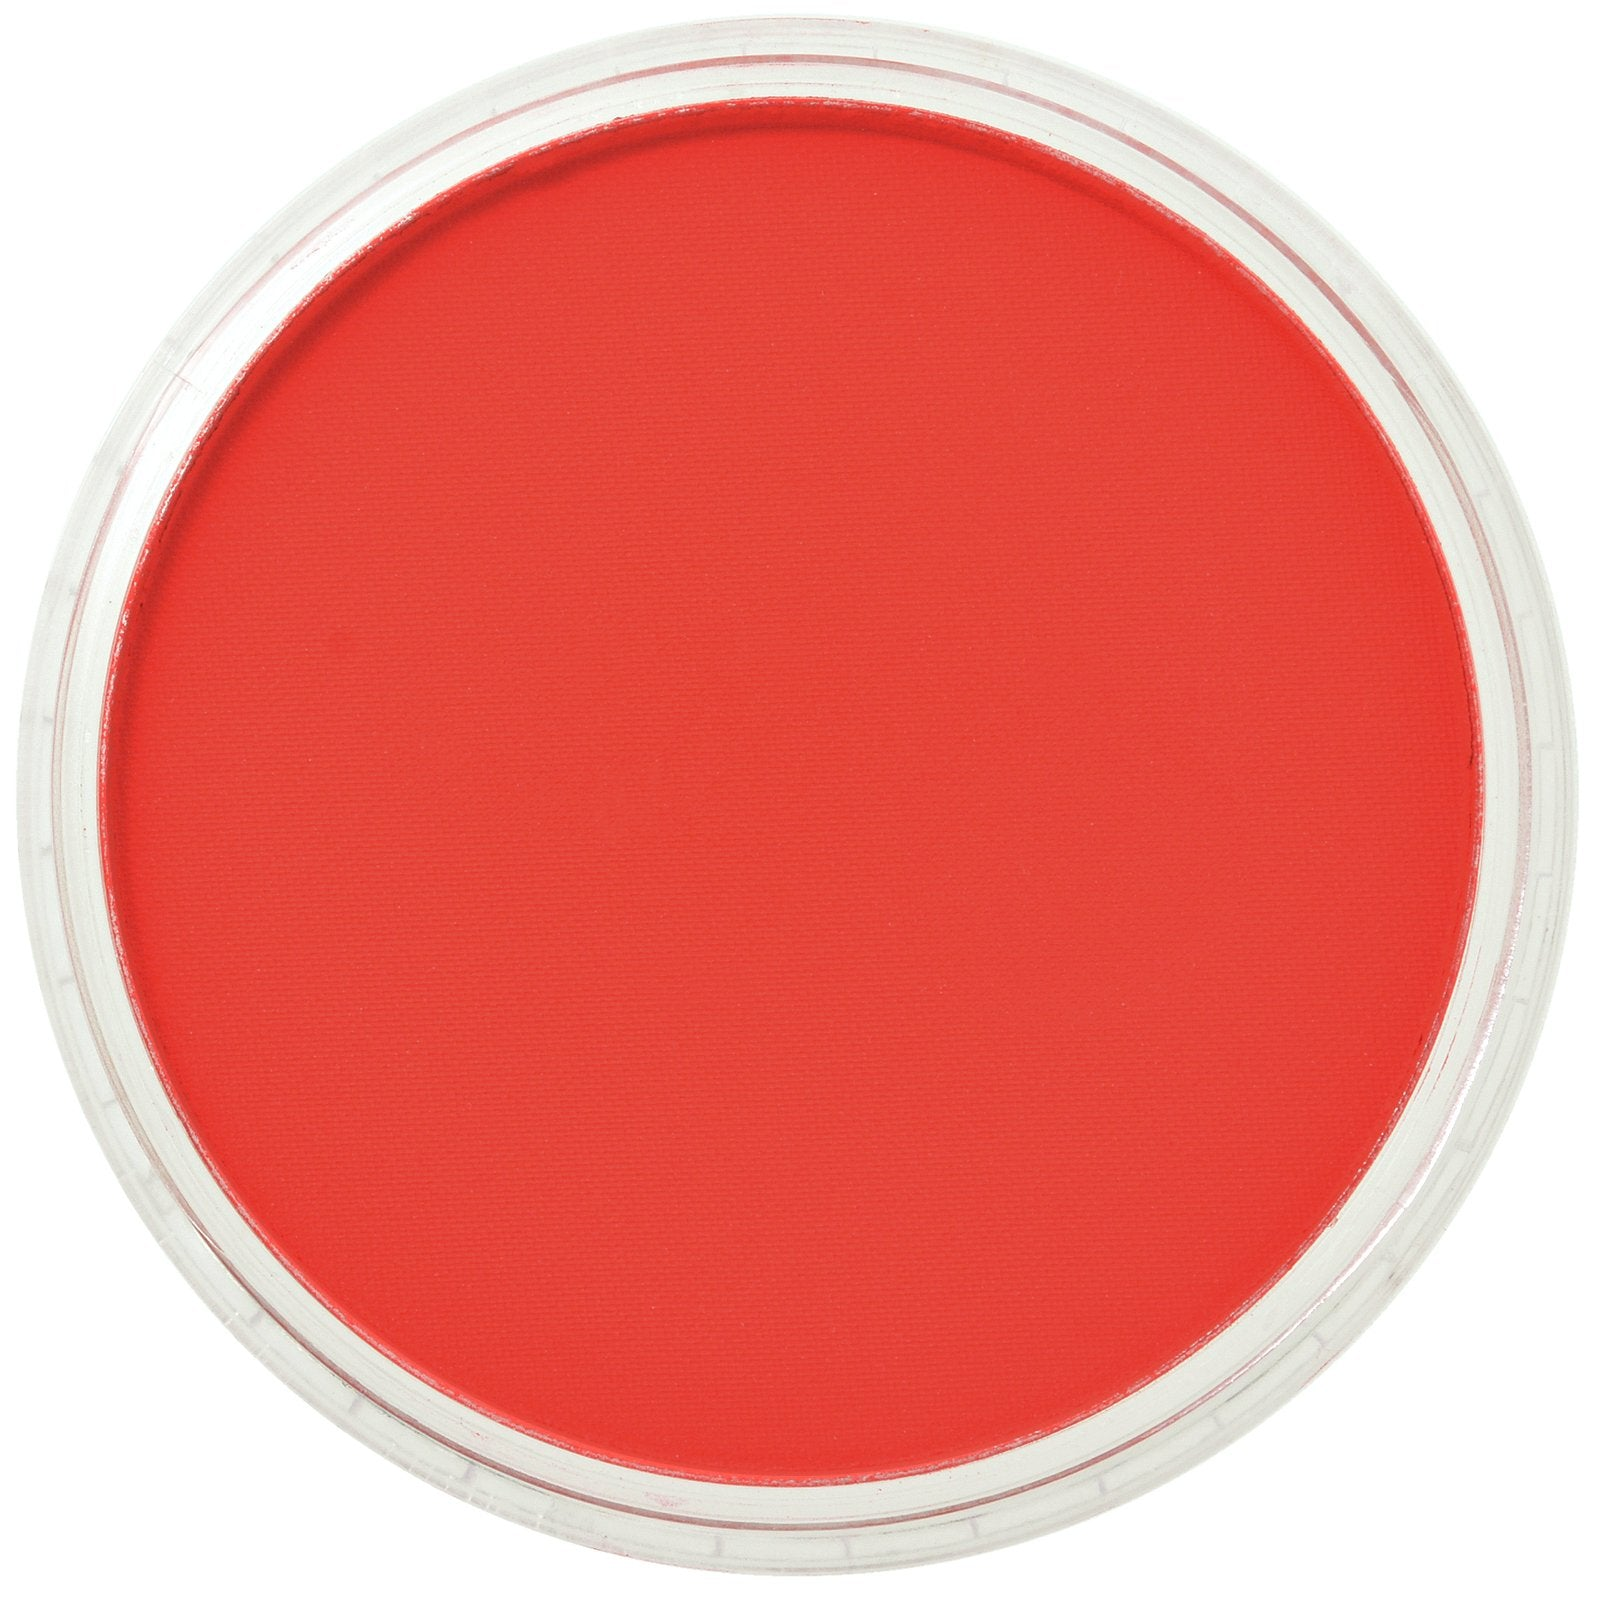 PanPastel - 340.5 PERMANENT RED